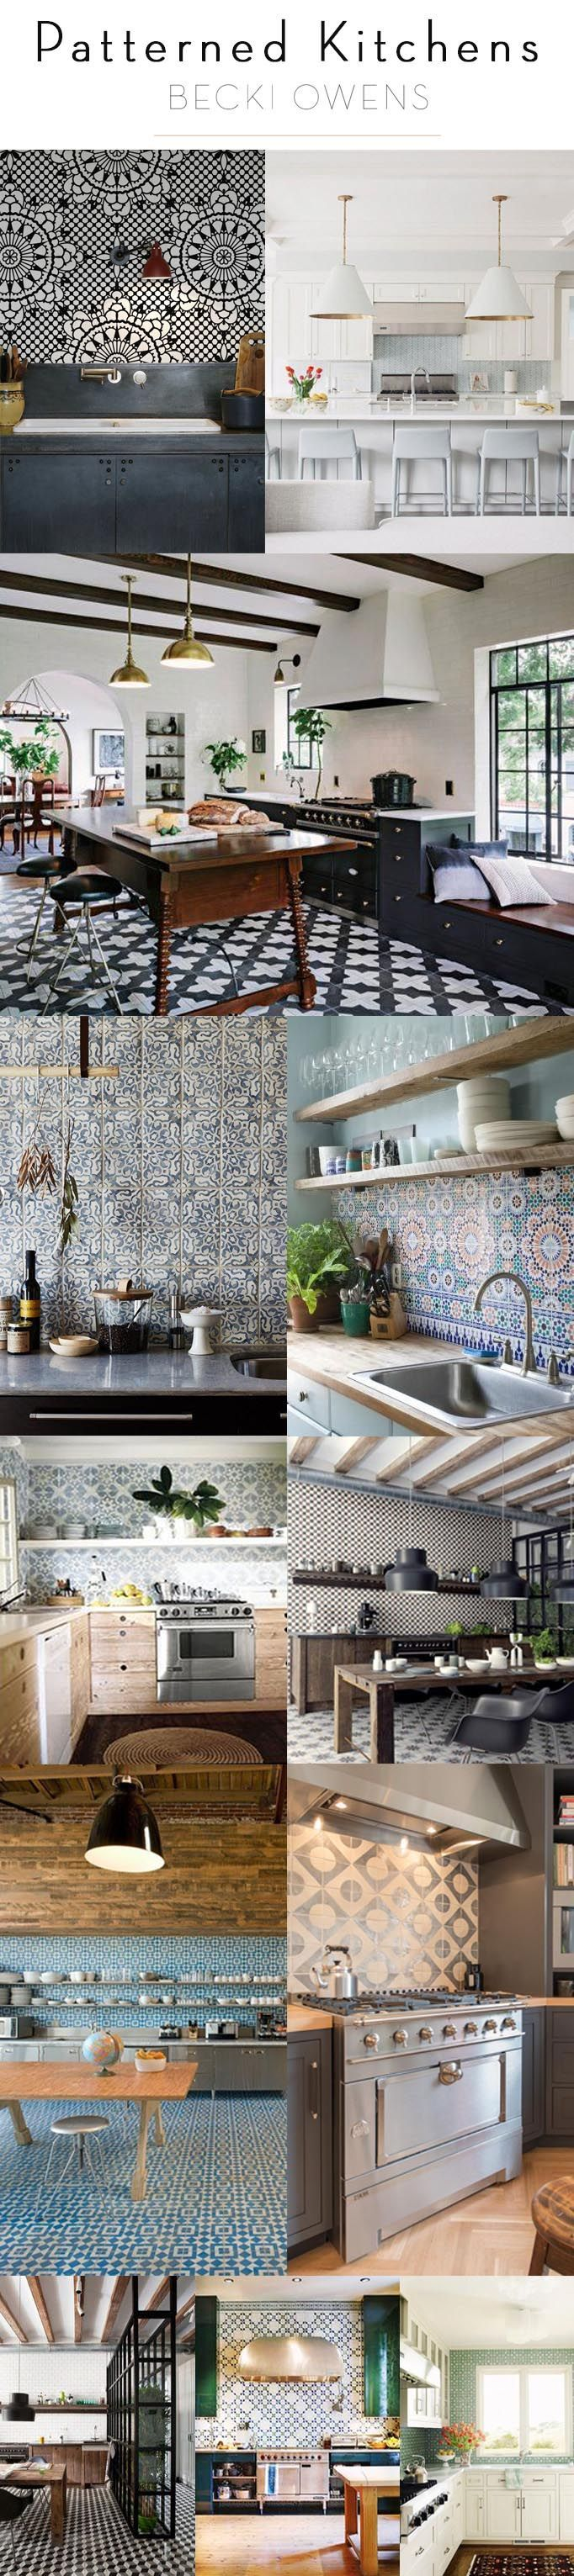 Best 25 Kitchen backsplash design ideas on Pinterest